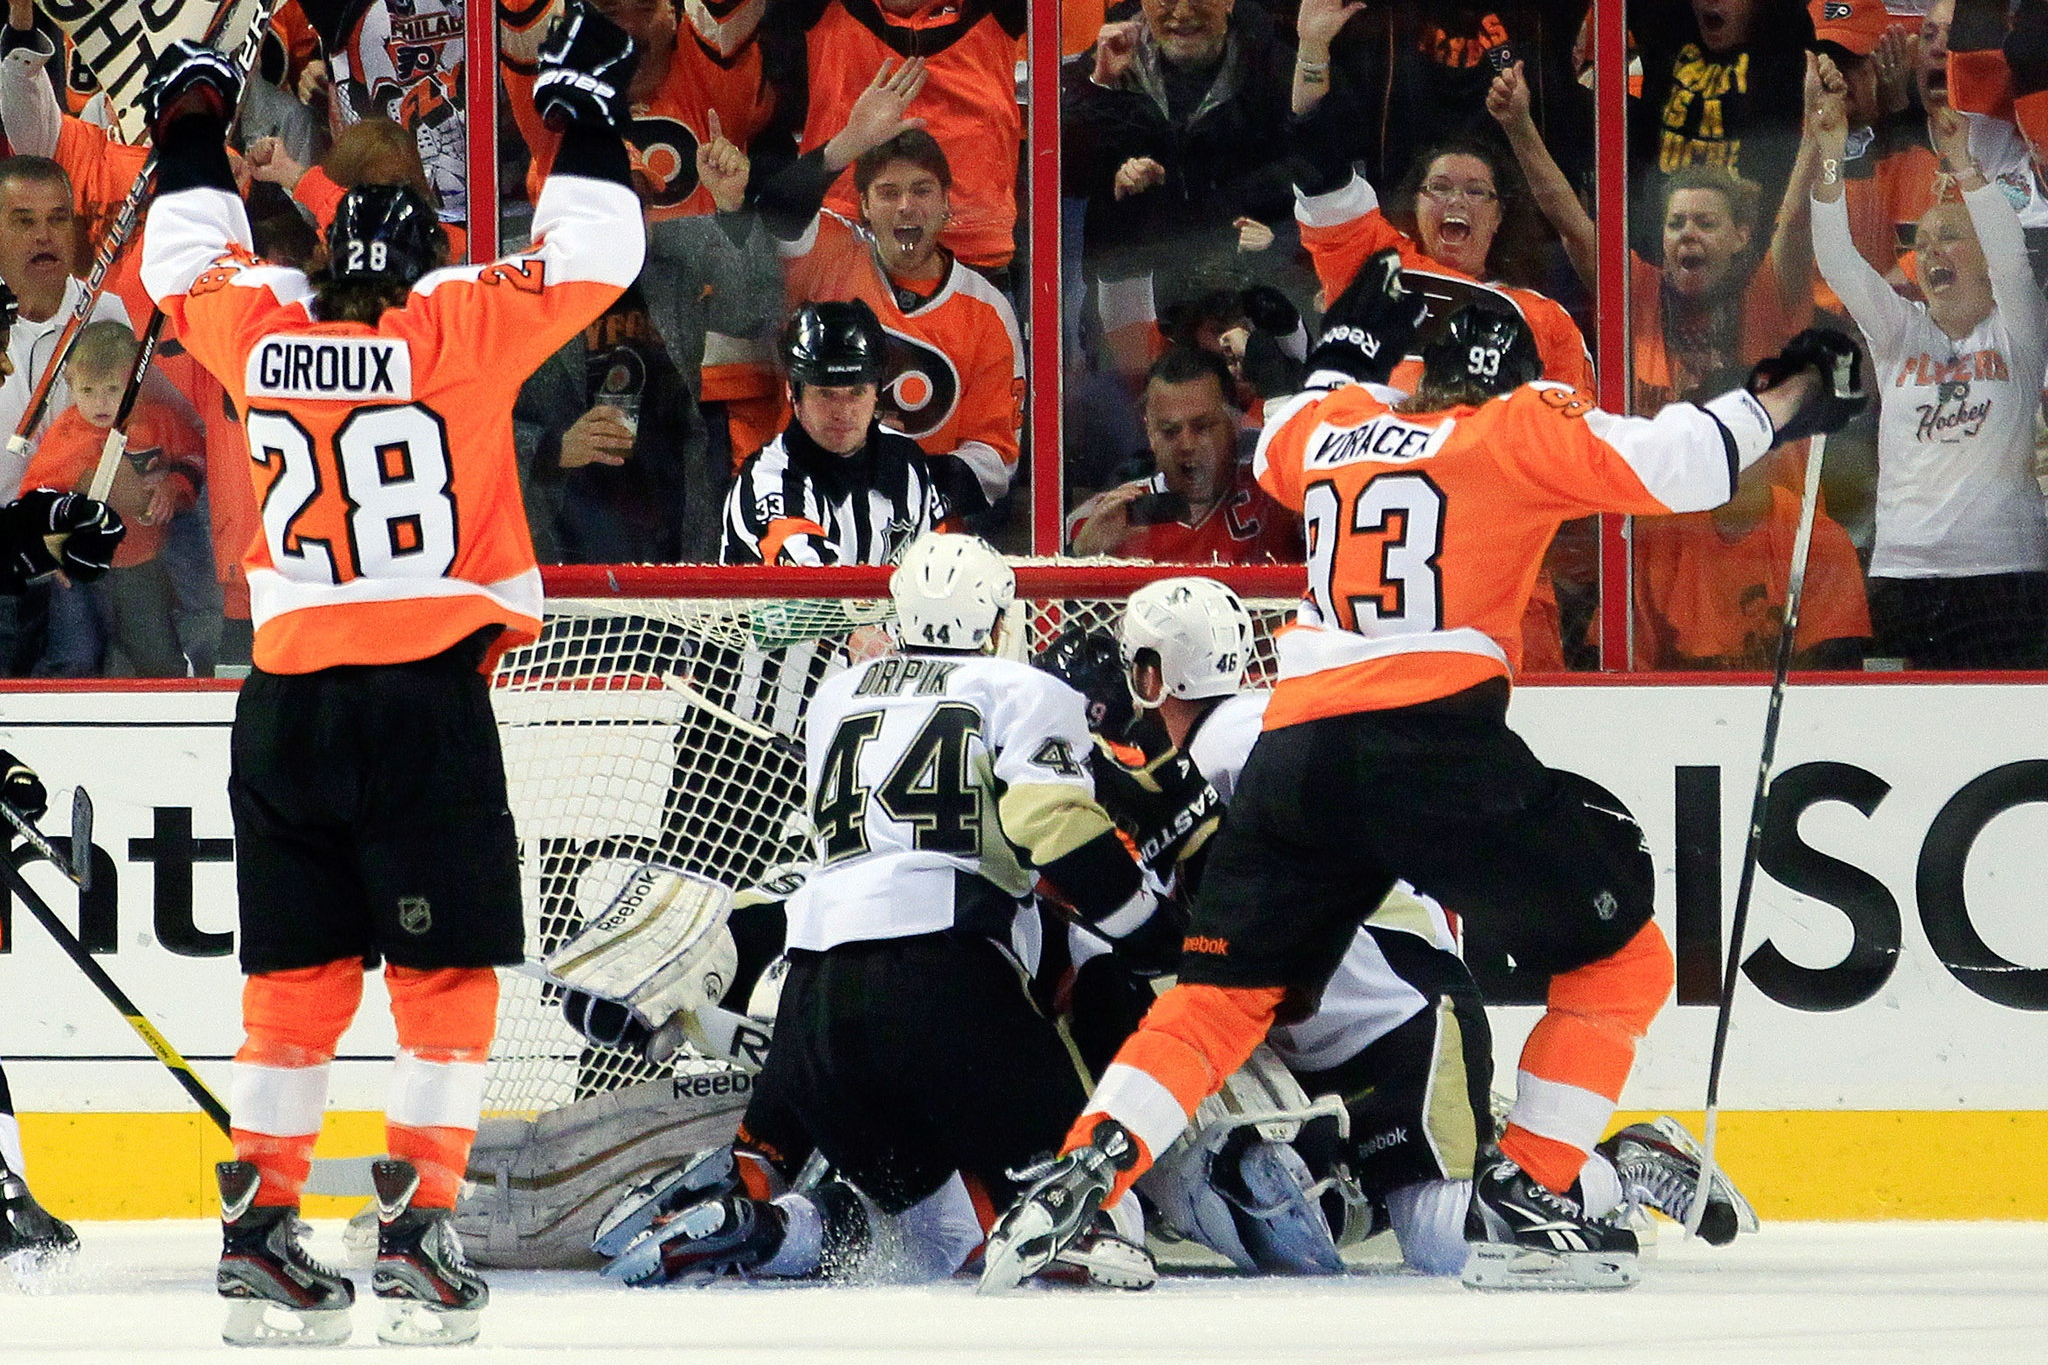 Preseason Preview: The 2016/17 Flyers: Part I